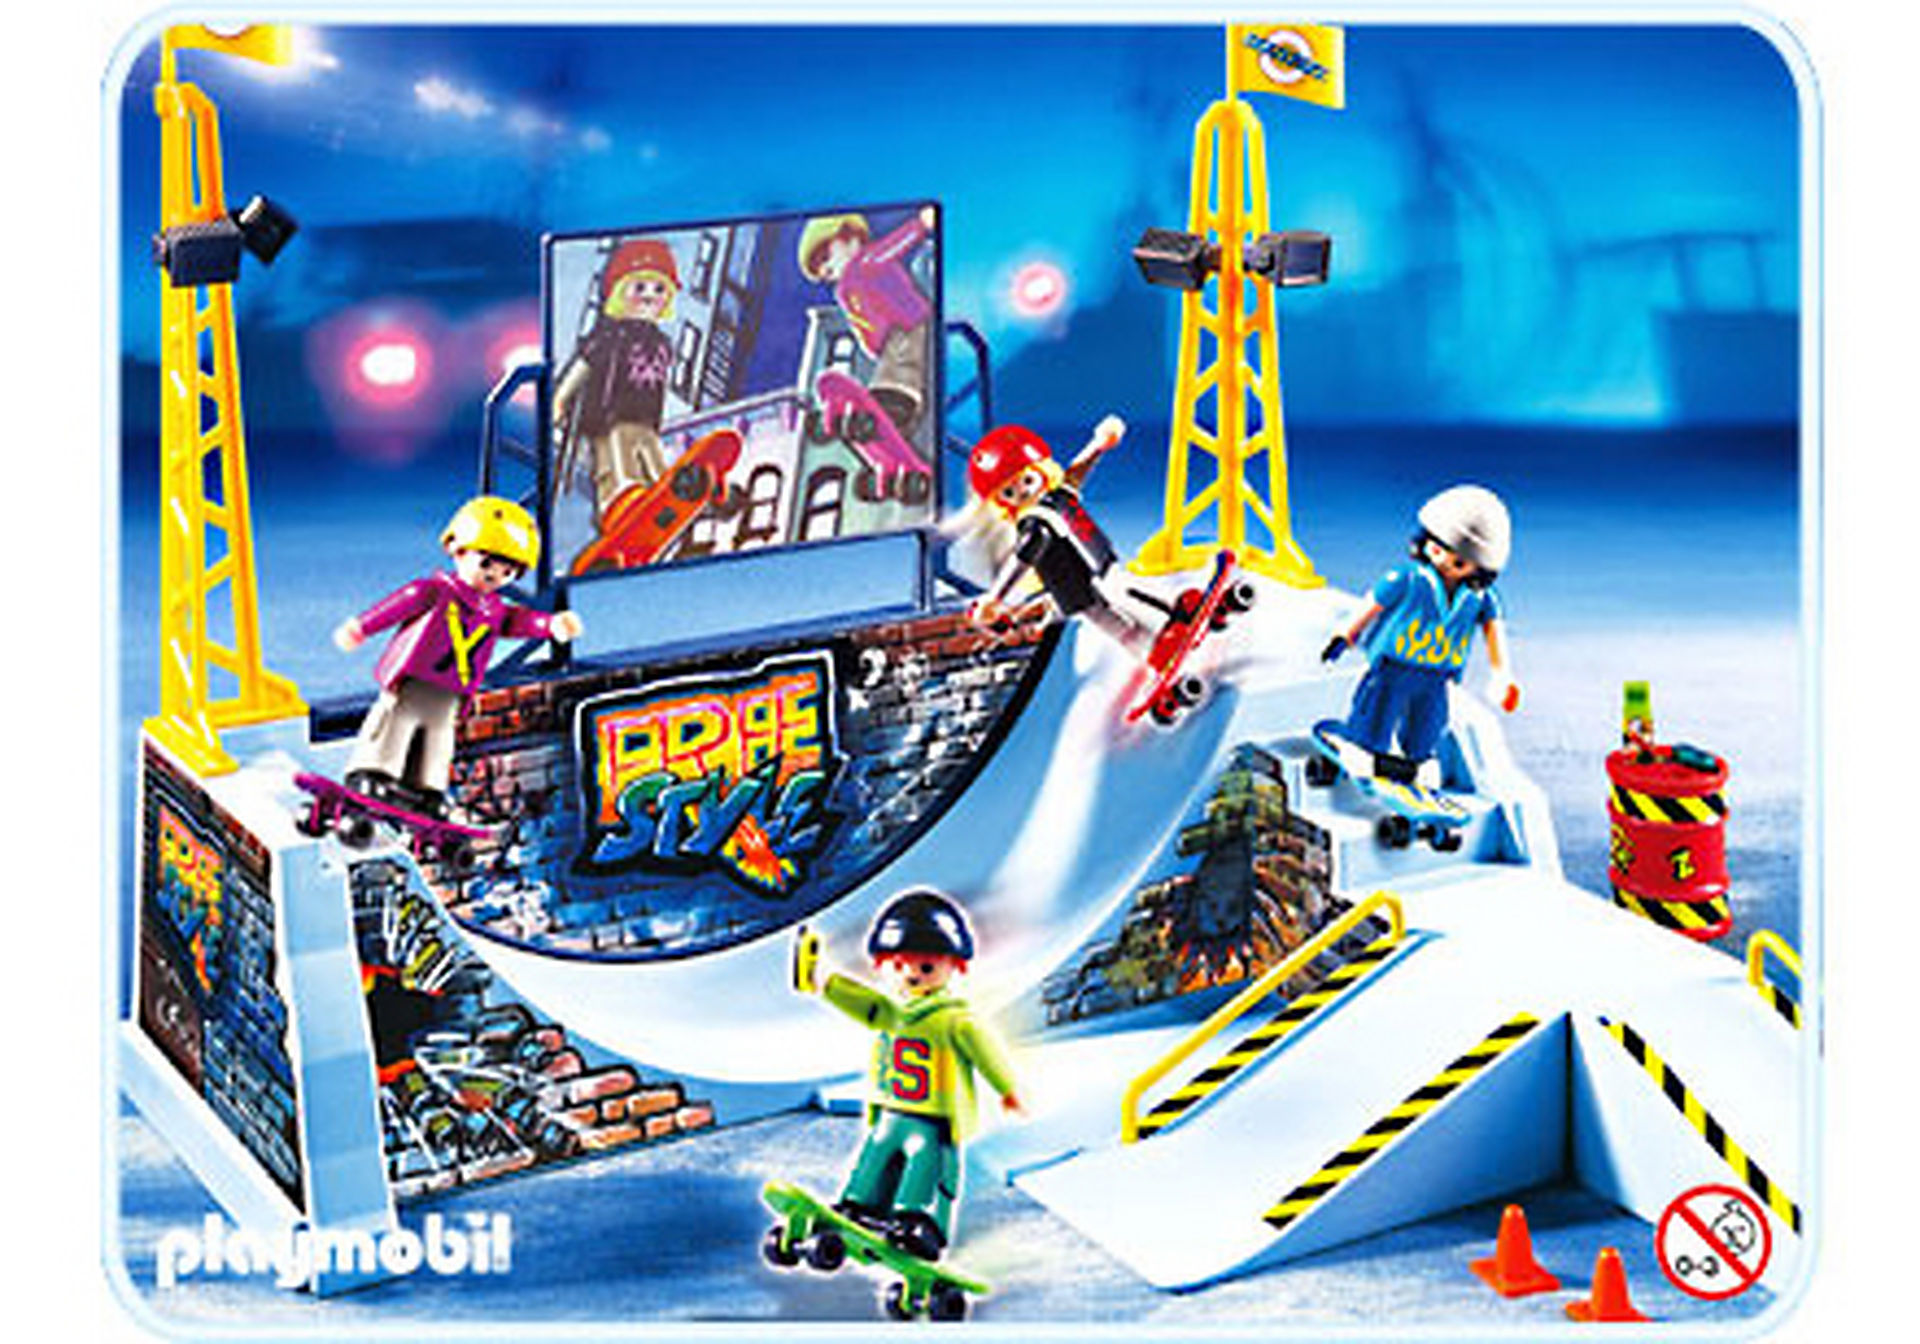 http://media.playmobil.com/i/playmobil/4414-A_product_detail/Skaterpark mit Halfpipe